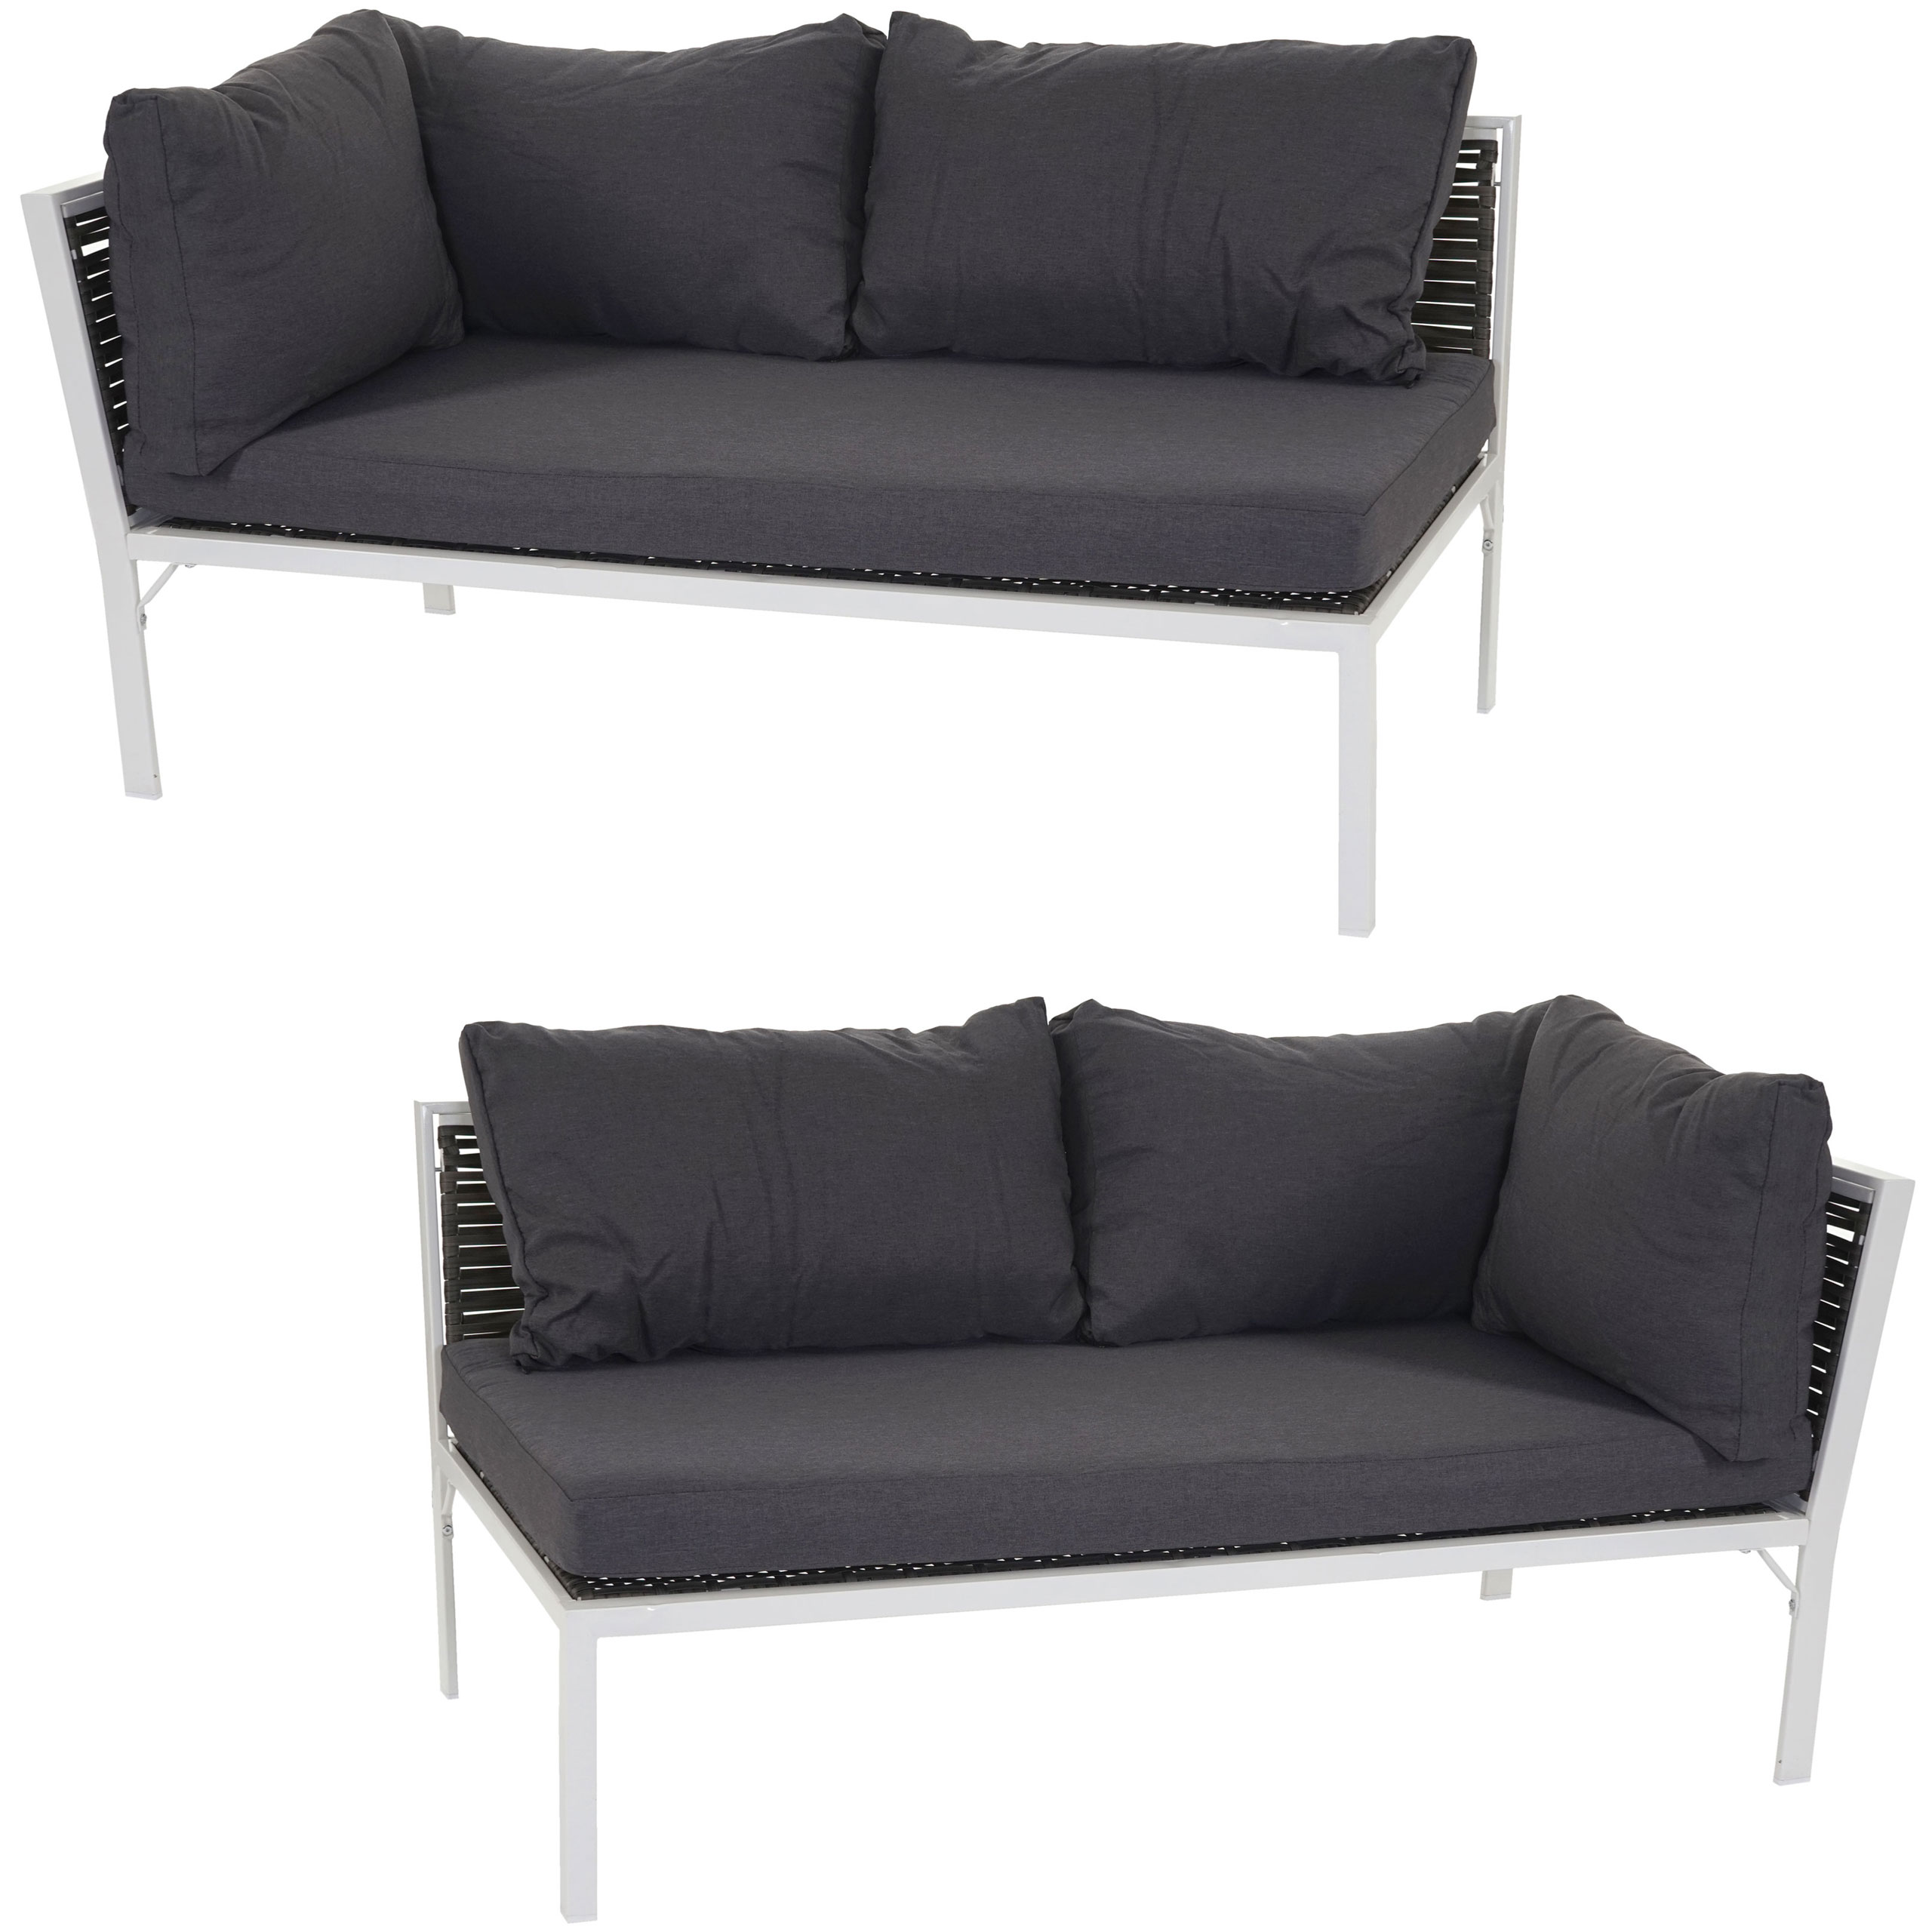 poly rattan sofa delphi loungesofa couch alu kissen anthrazit. Black Bedroom Furniture Sets. Home Design Ideas